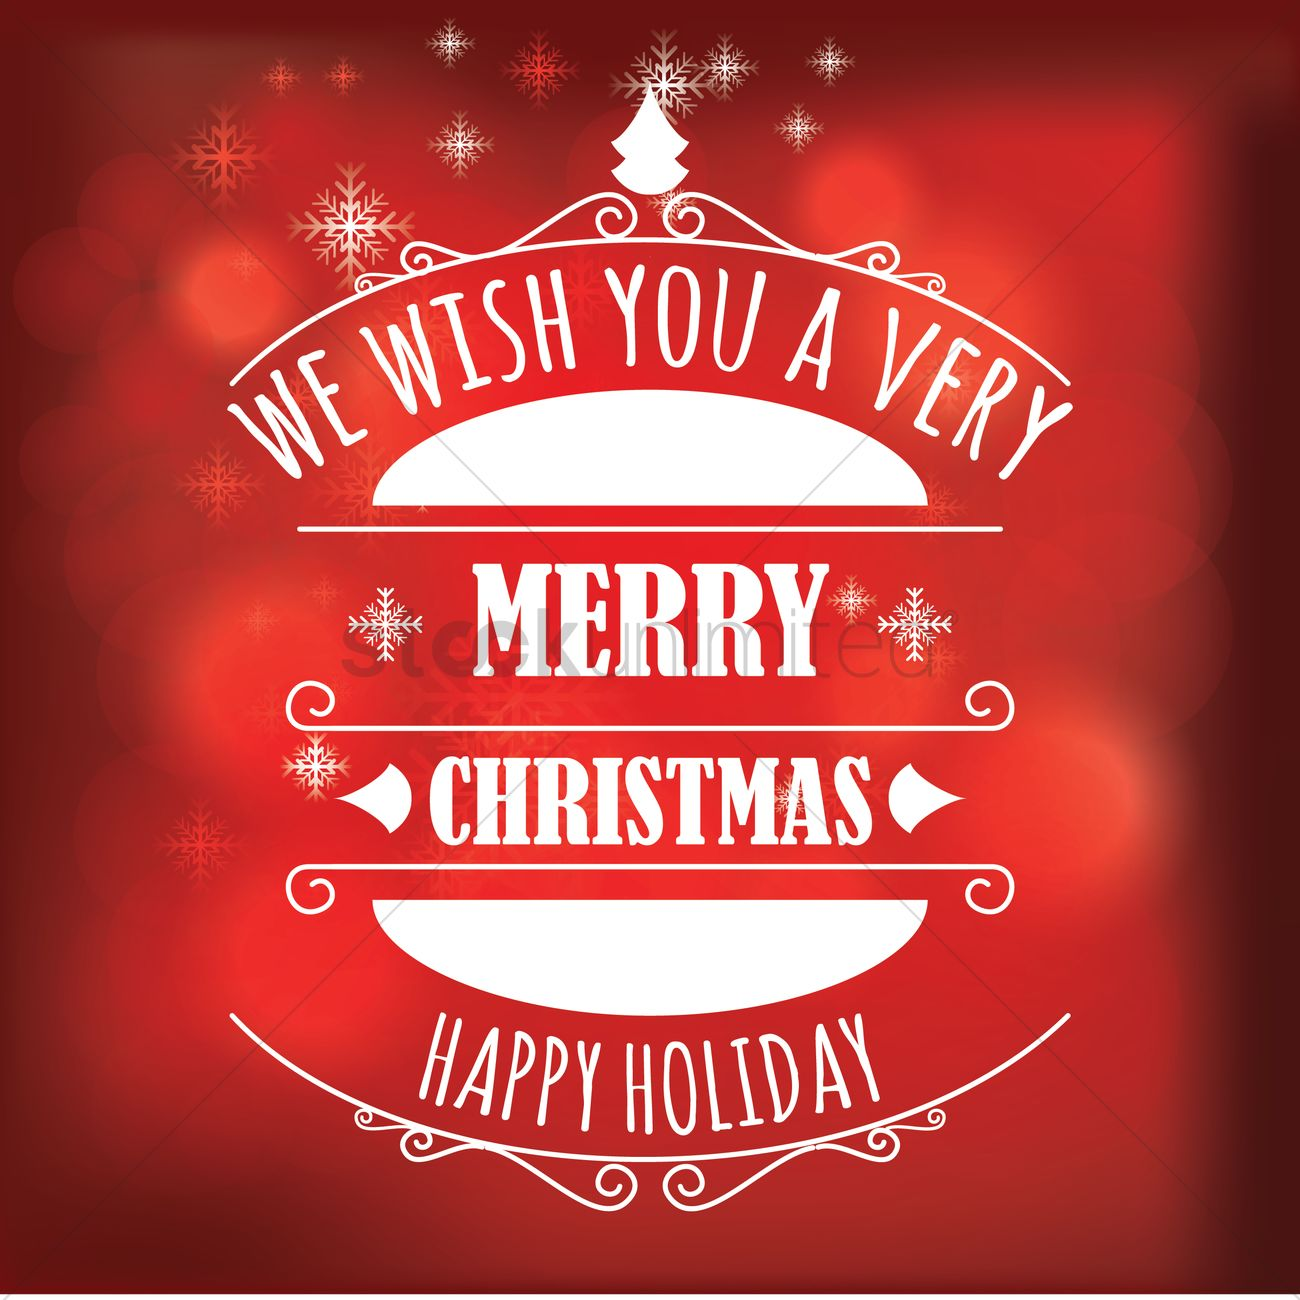 Free Merry Christmas And Holiday Greetings Vector Image 1603981